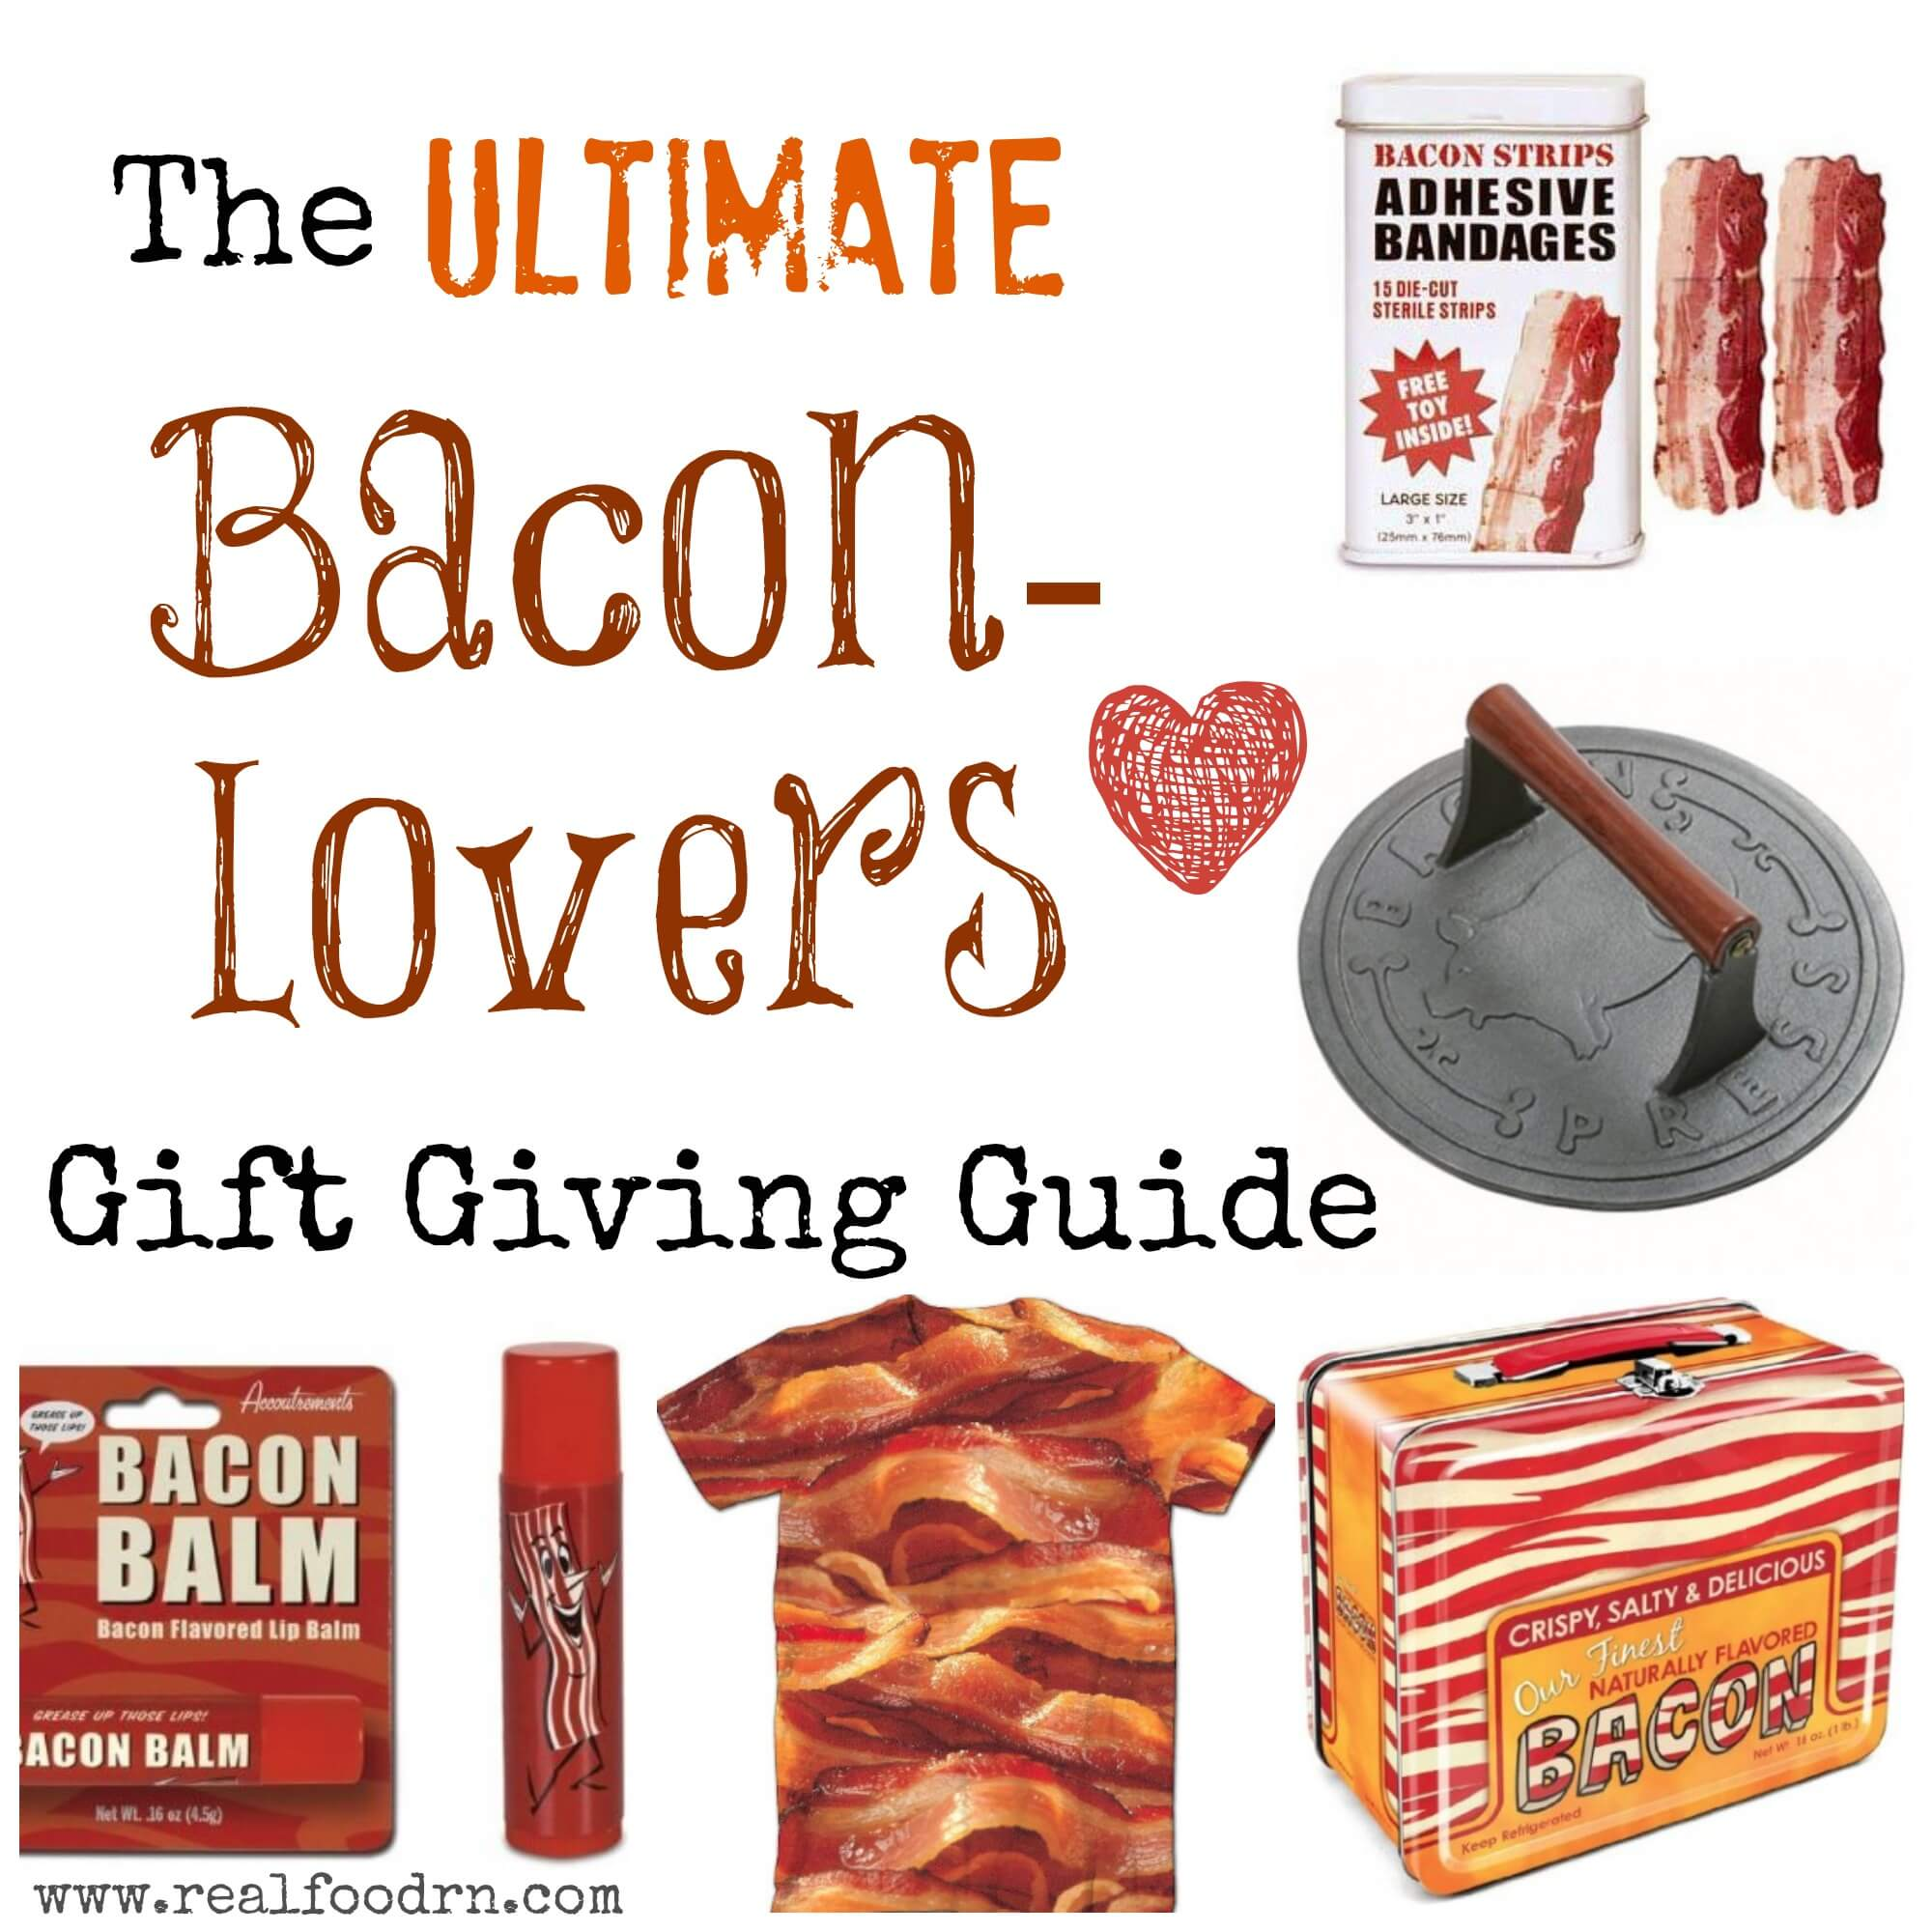 Gift Ideas for the Bacon Lover